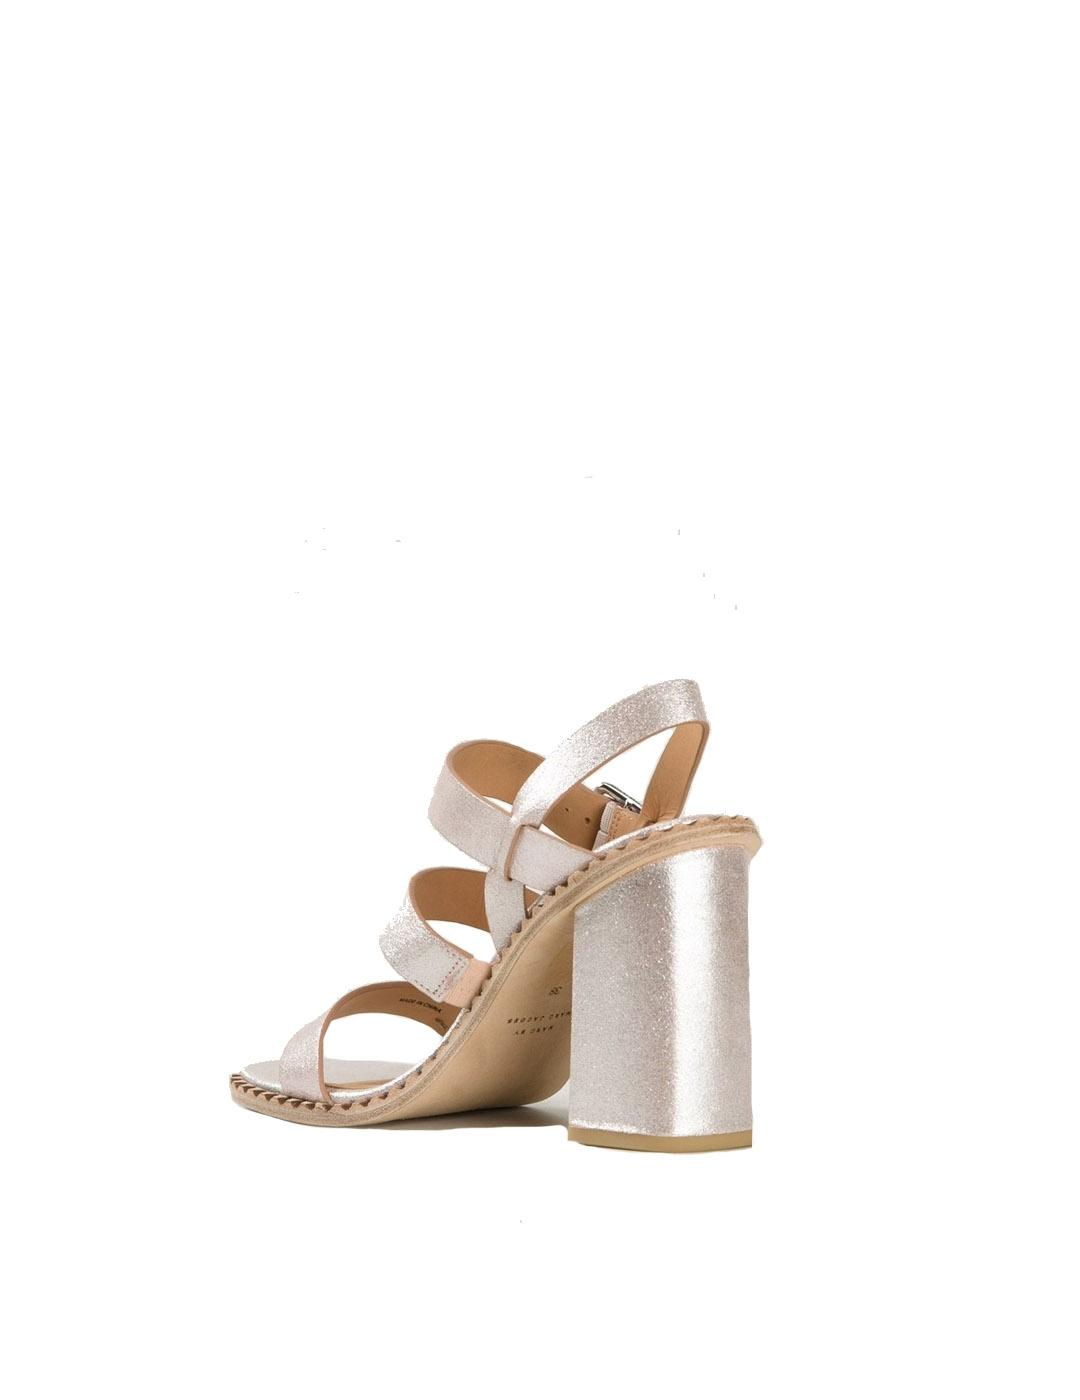 Sandalias Marc by Marc Jacobs plata Mix it Metallic Crosta